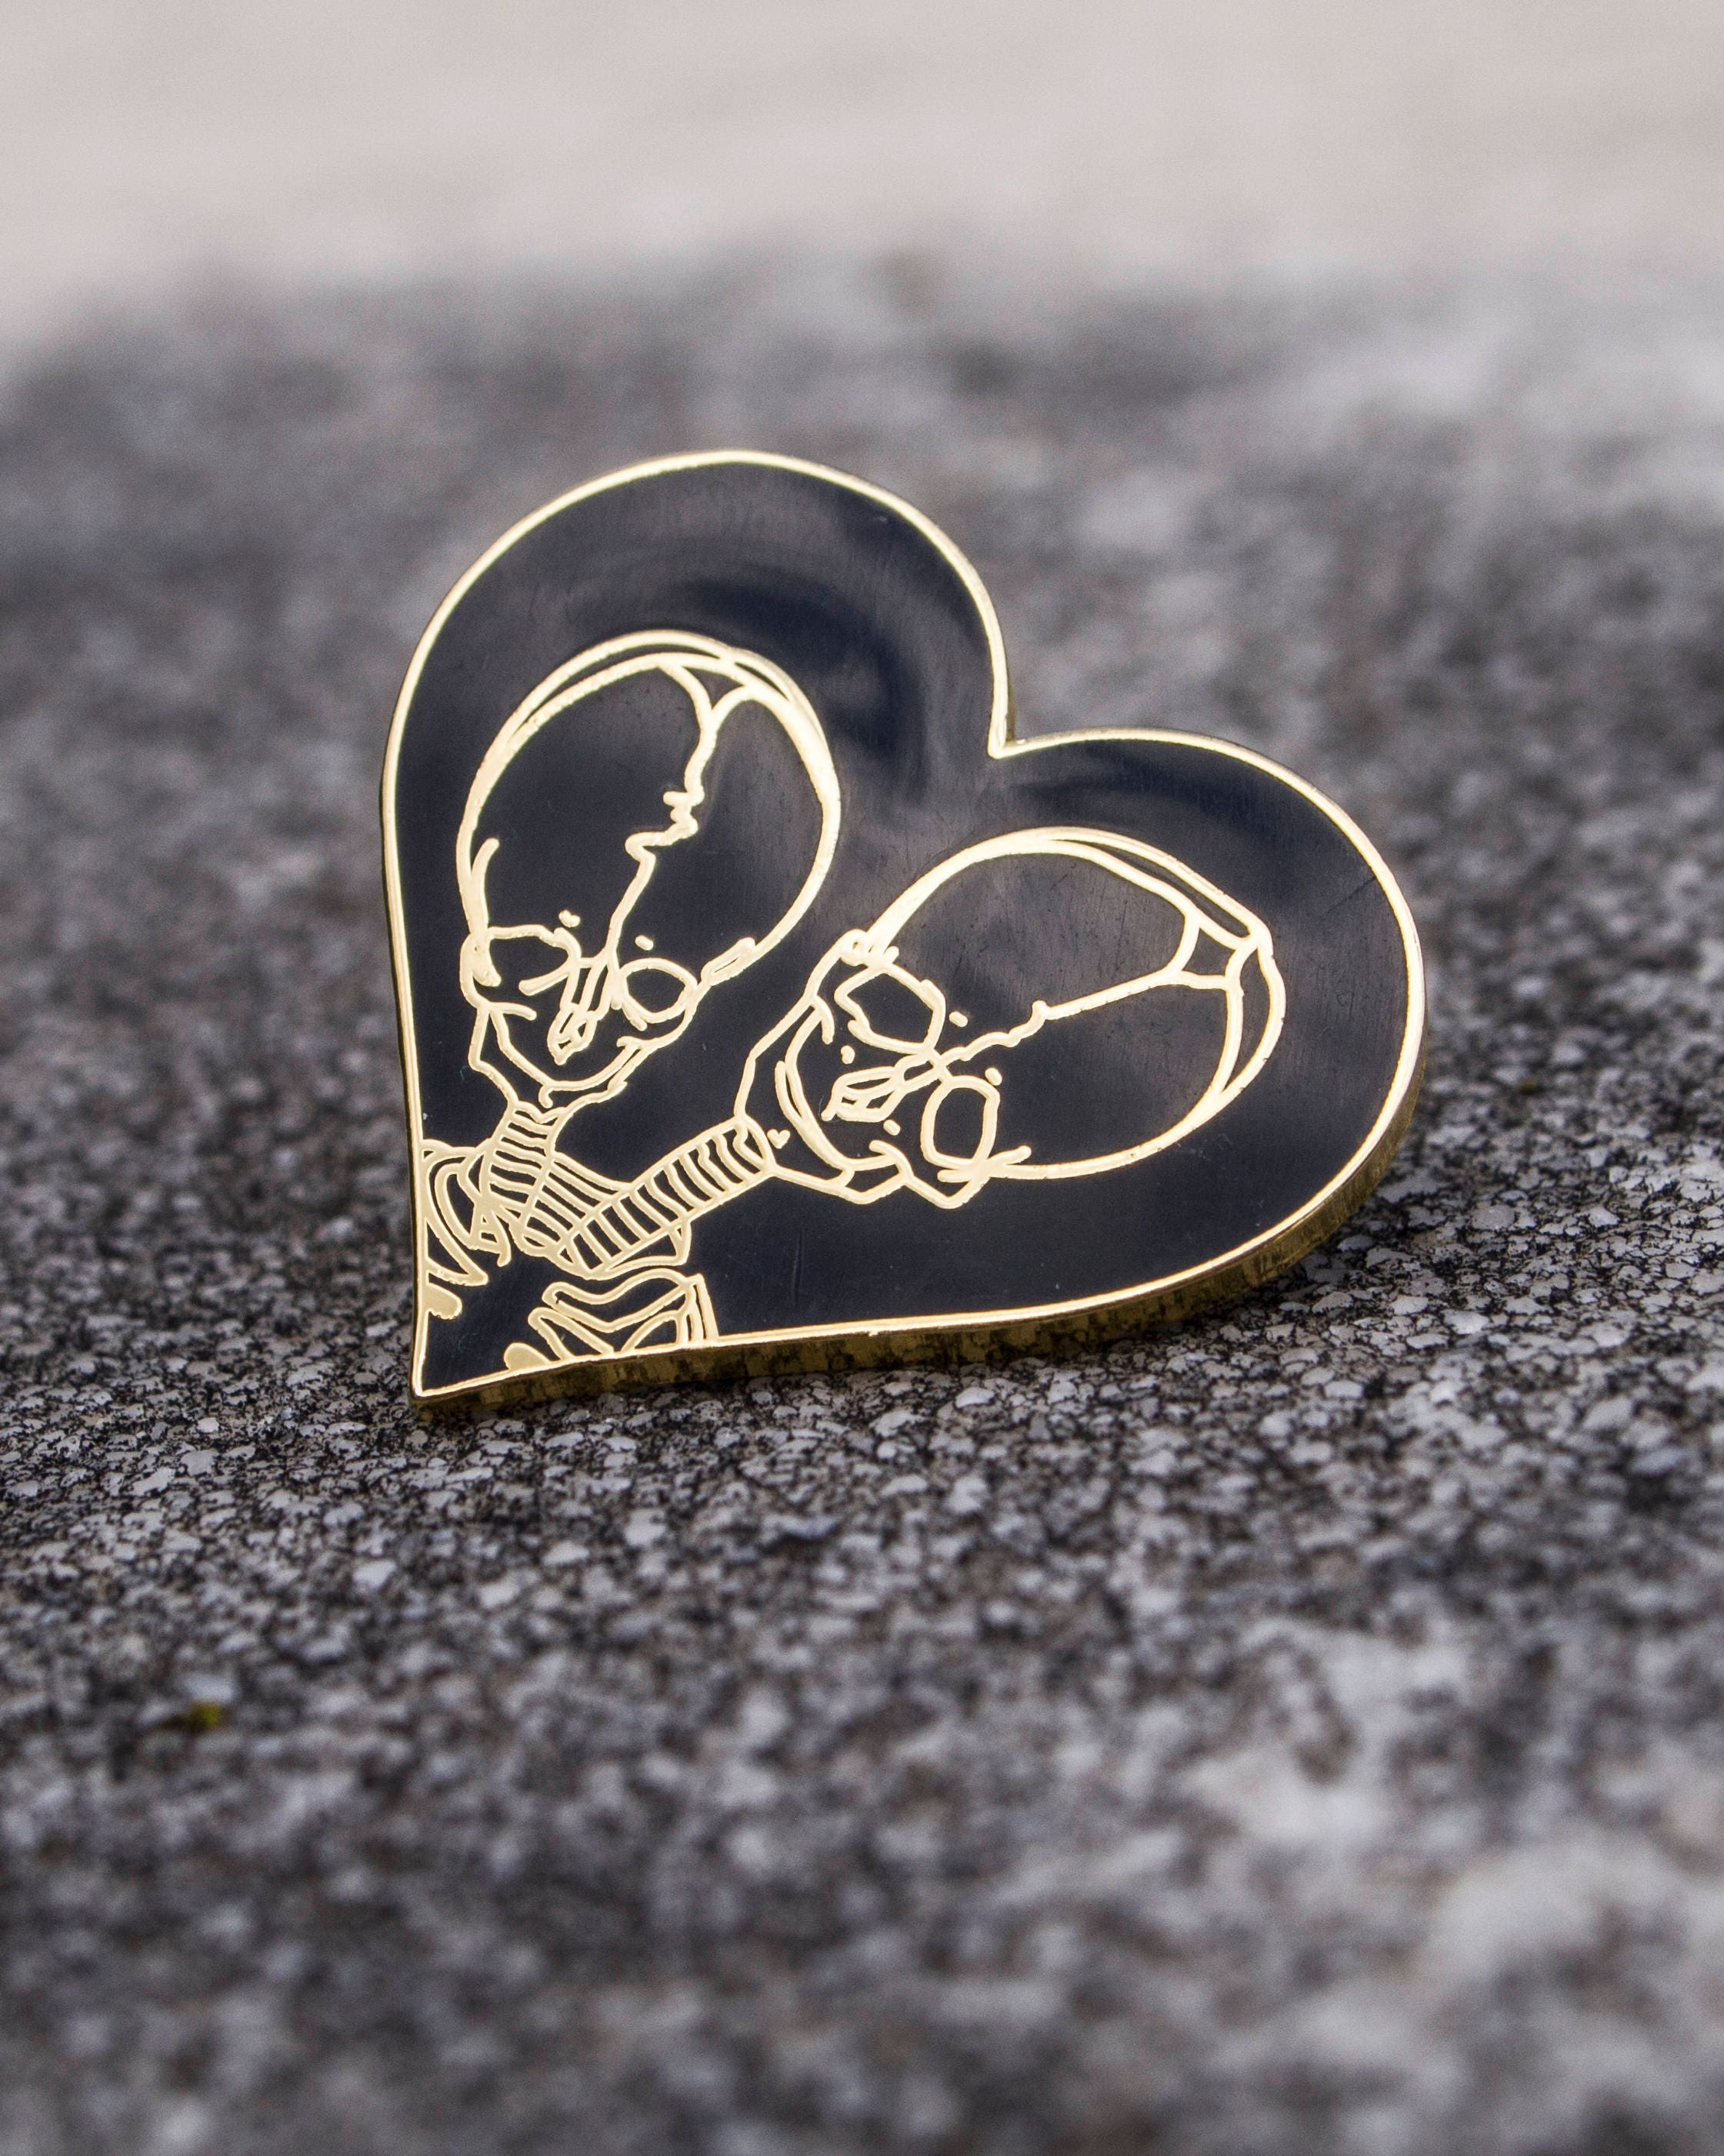 Together Forever Pin and Patch Combo